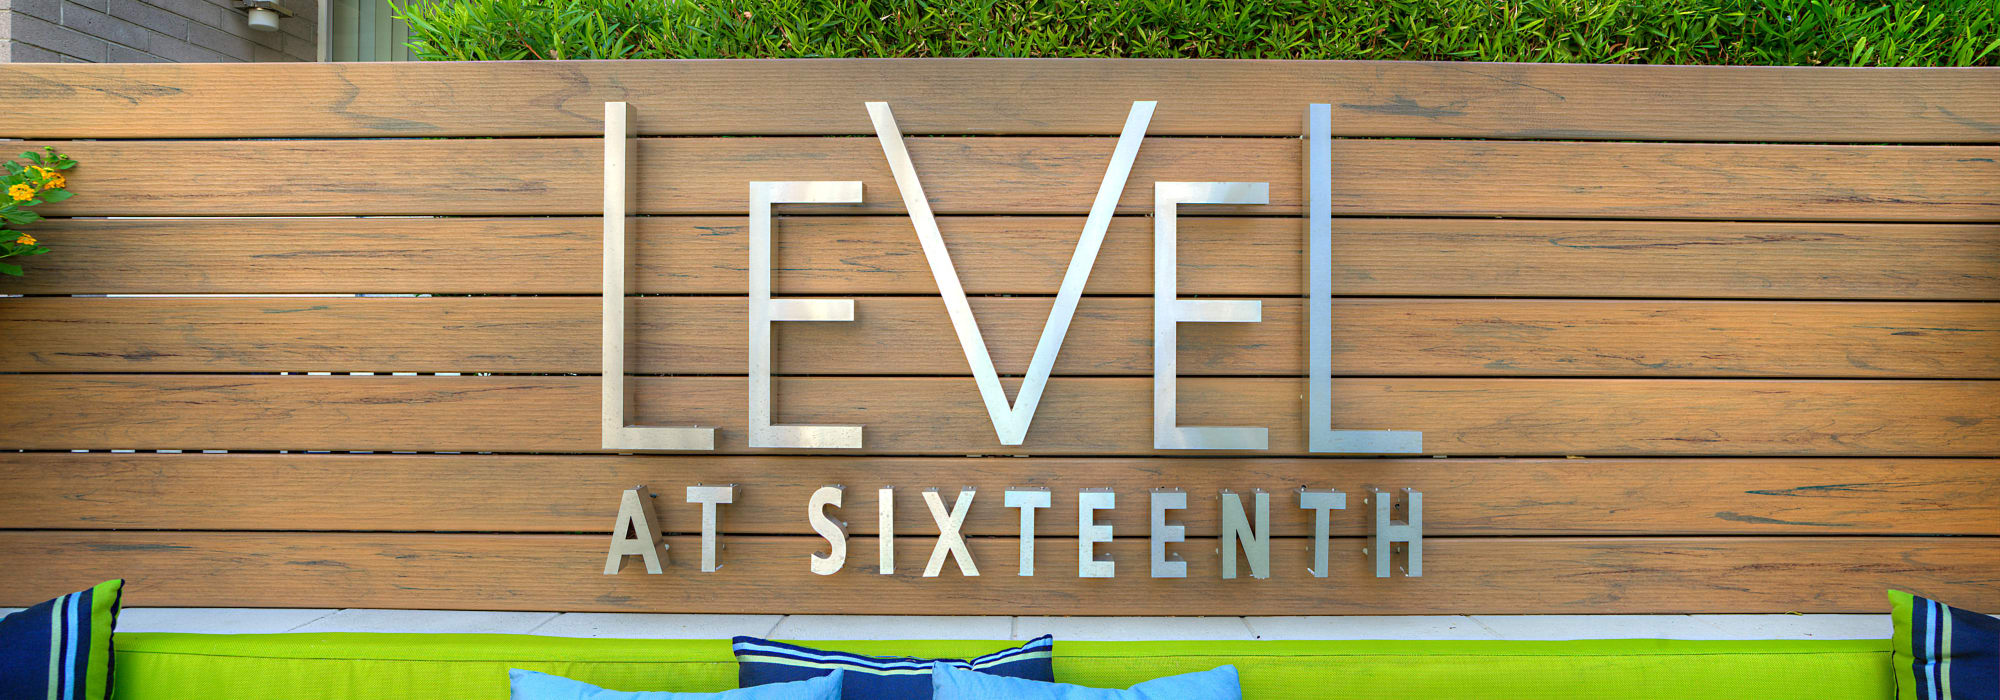 Our sign at Level at Sixteenth in Phoenix, Arizona